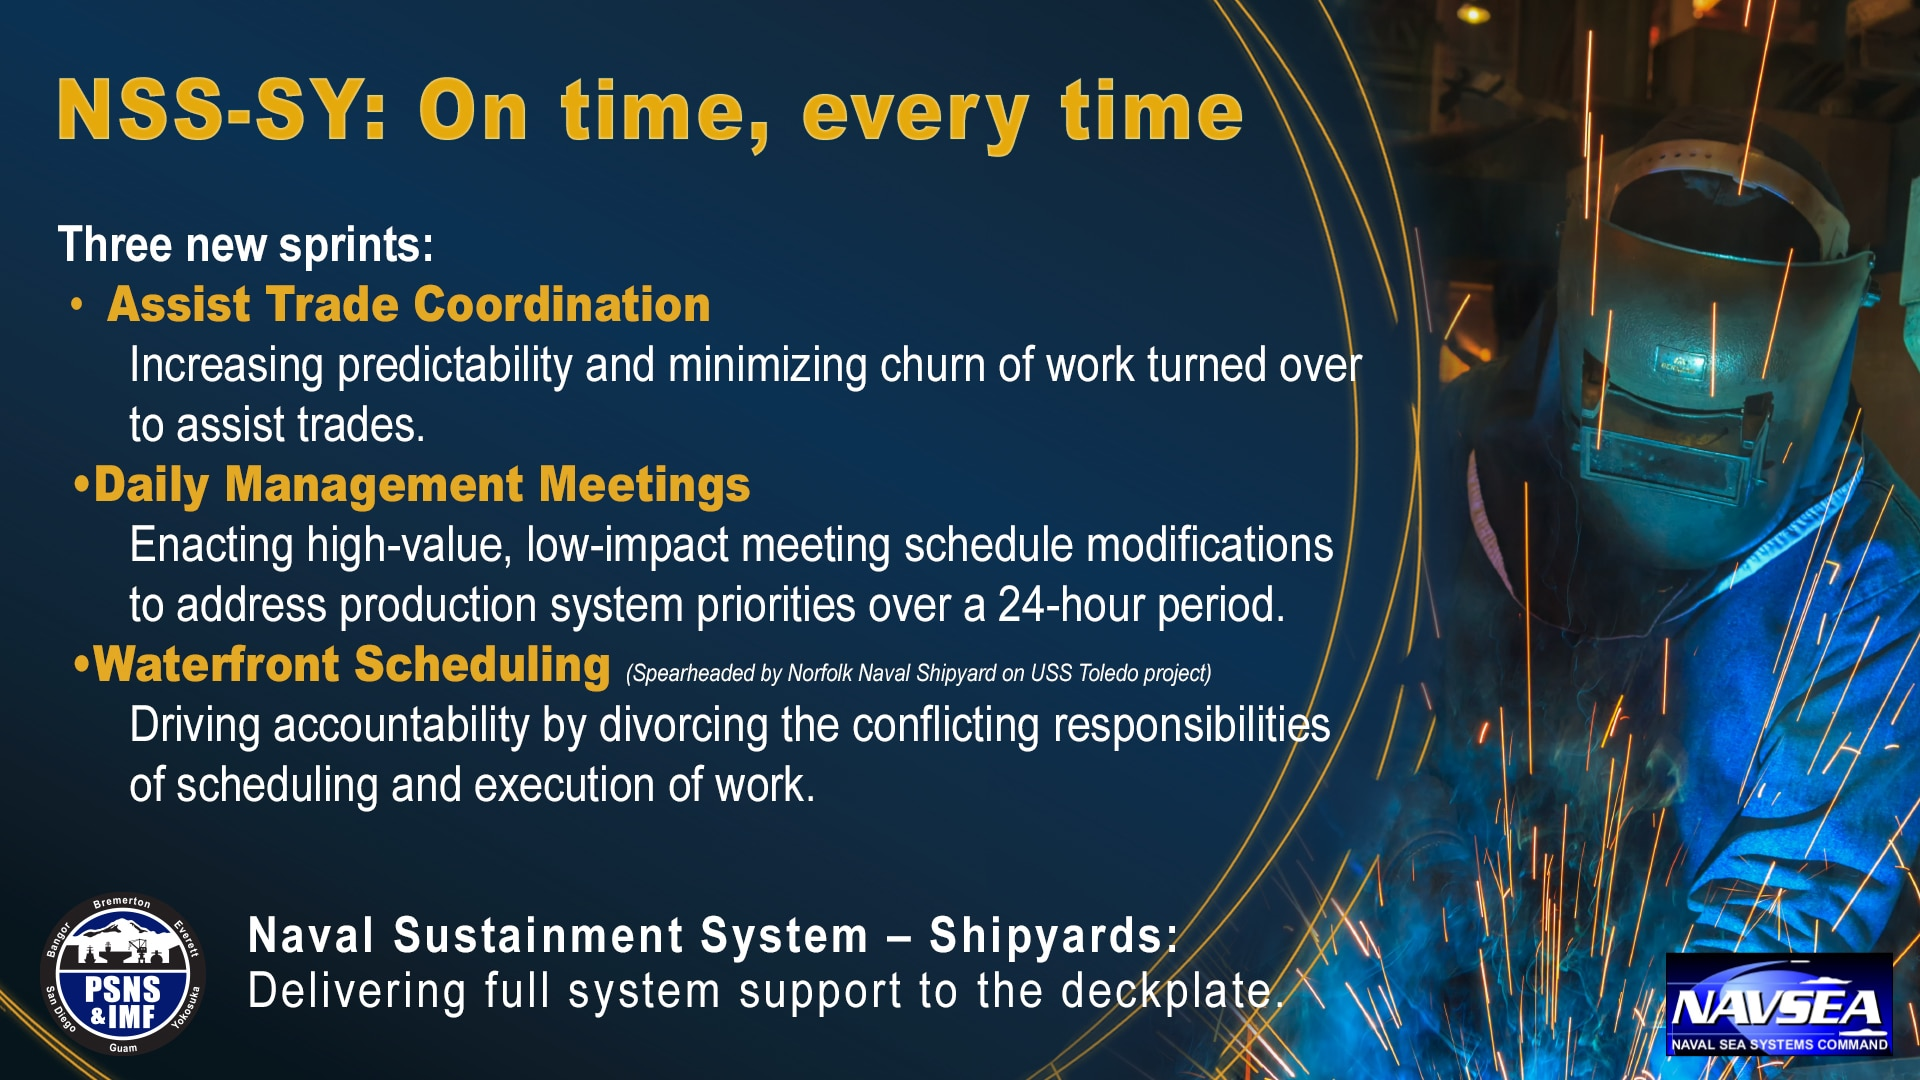 NSS-SY: On time, every time graphic detailing next three Naval Sustainment System – Shipyard sprits to be explored by Puget Sound Naval Shipyard & Intermediate Maintenance Facility and the other three U.S. Navy shipyards. (U.S. Navy graphic by Robin Lee)